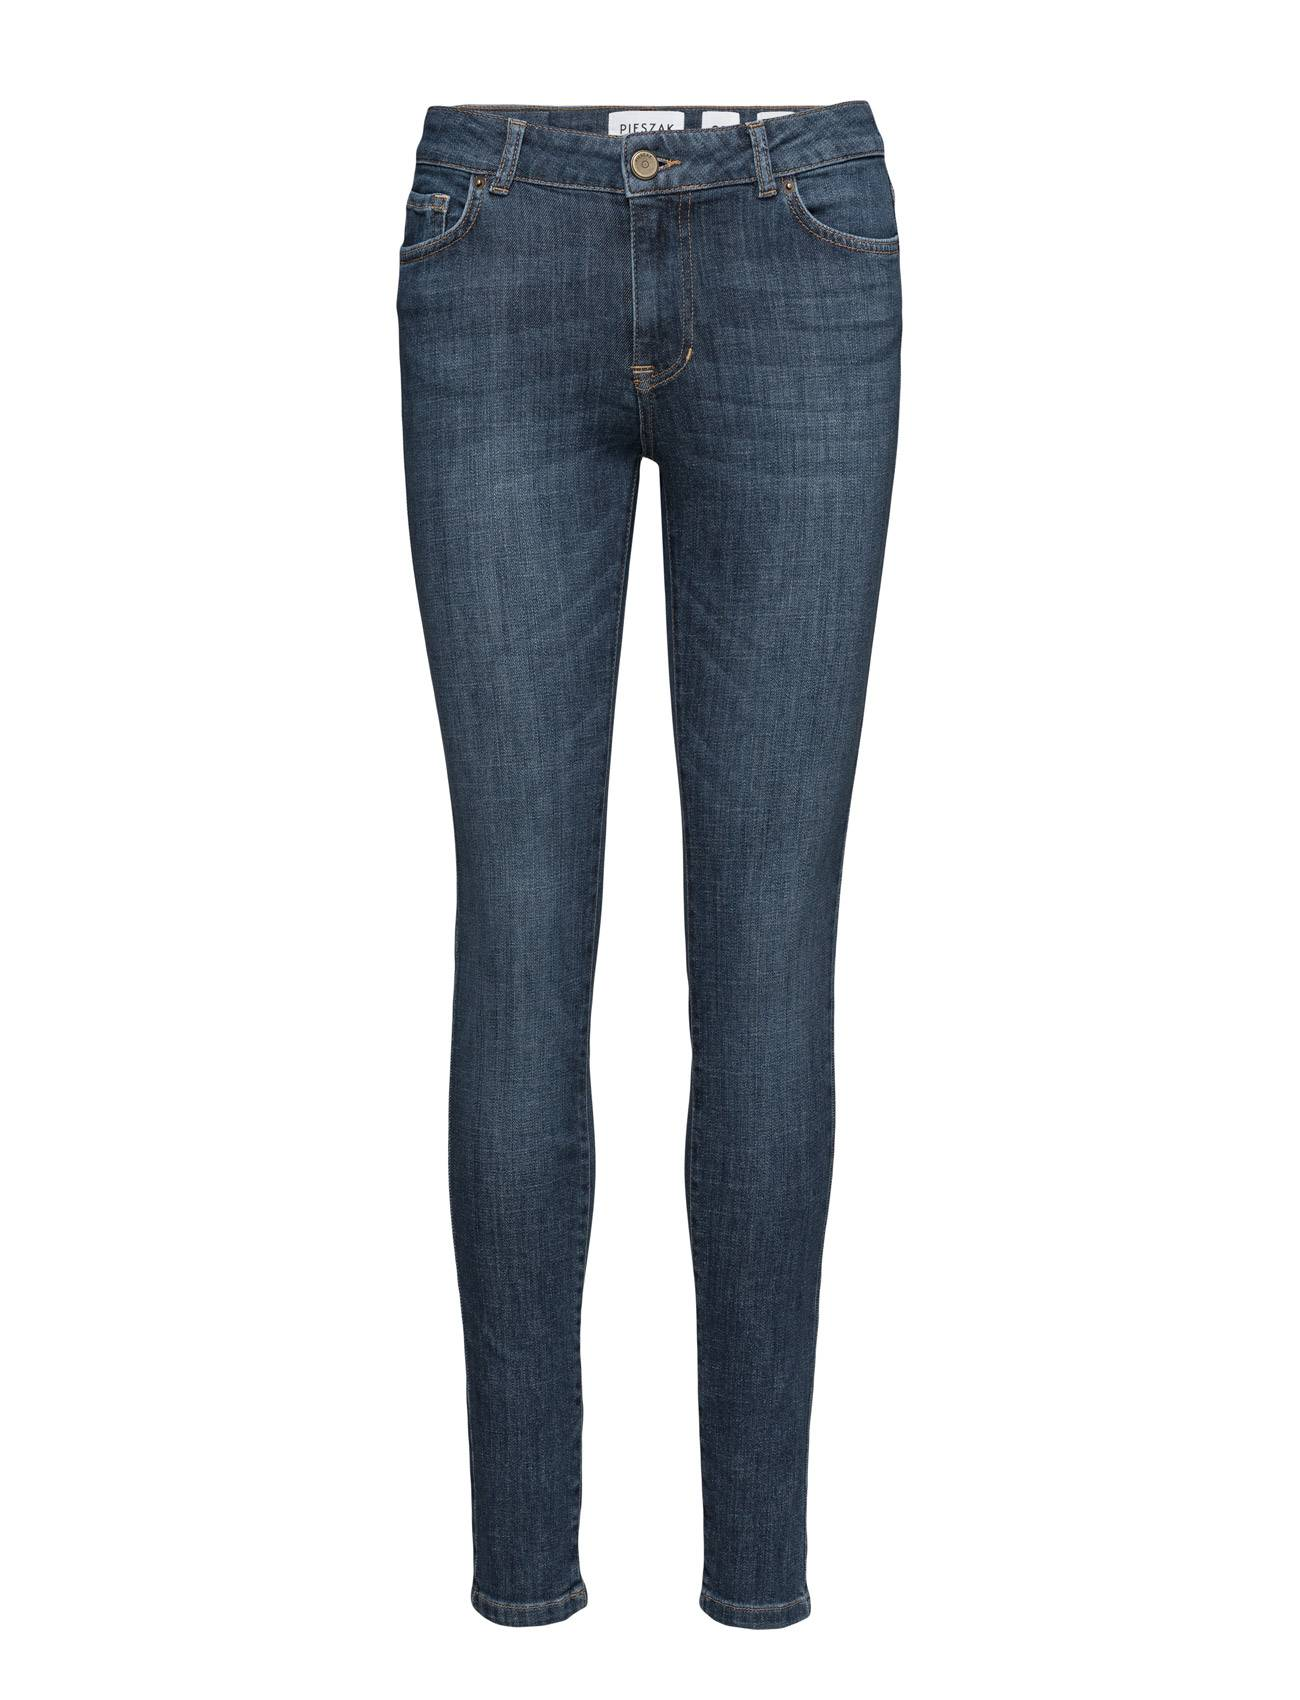 Pieszak Diva Skinny Wash Washington